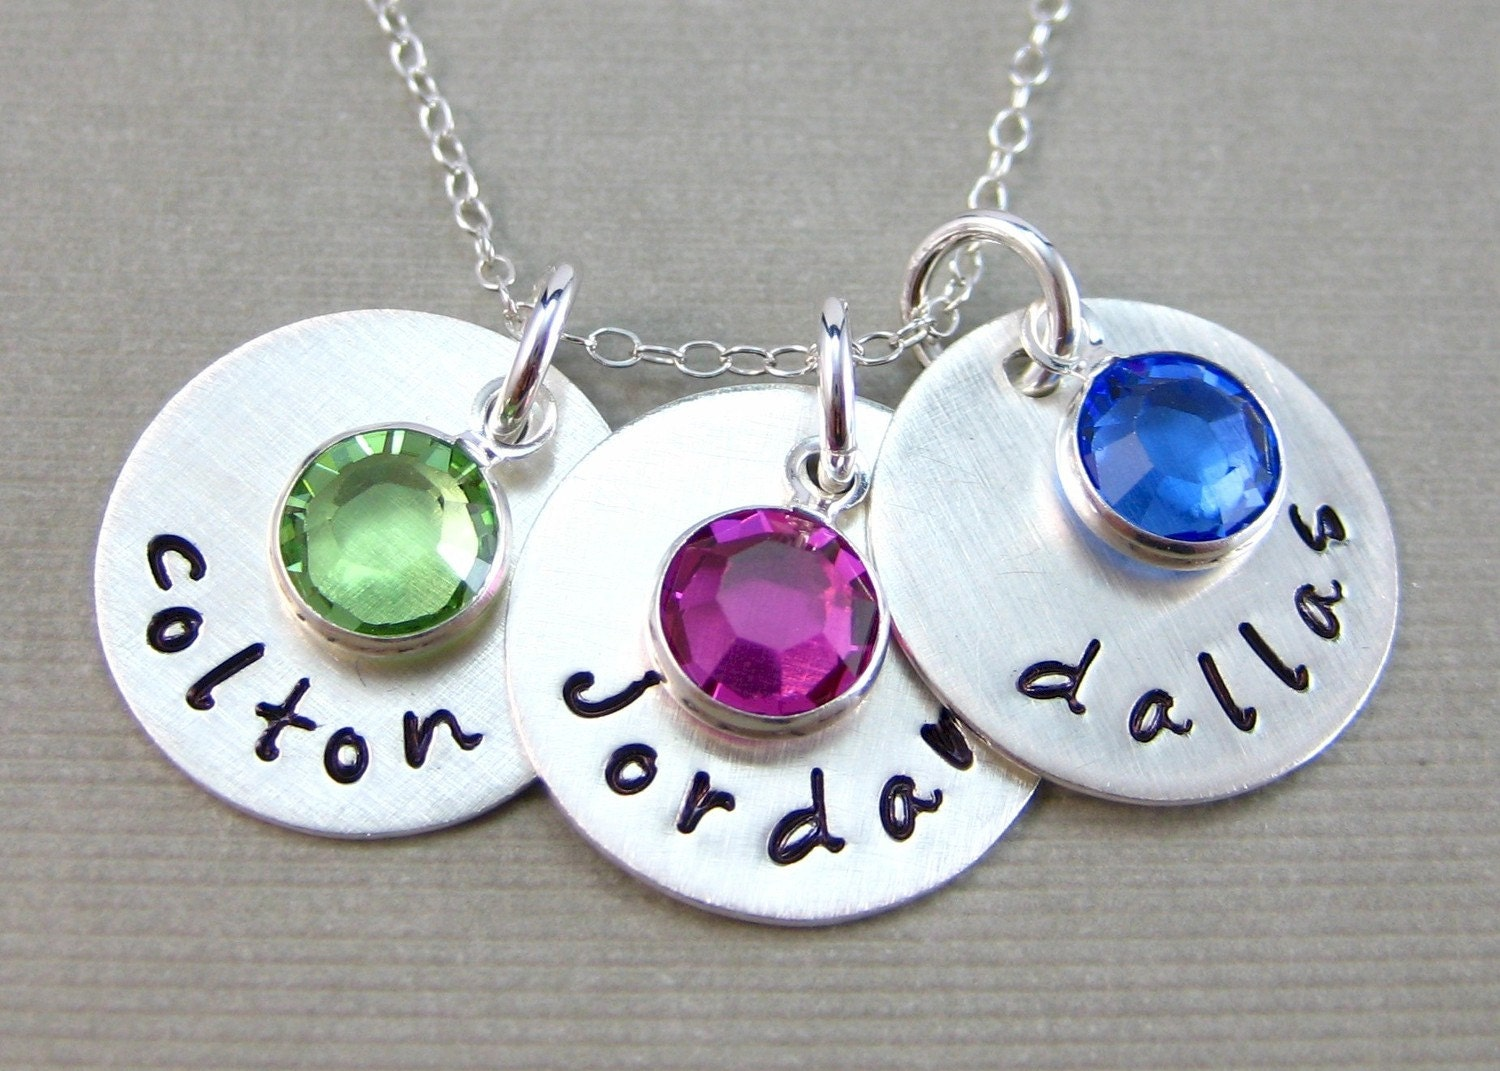 THREE NAME Charm Handstamped Personalized Sterling Silver Keepsake Necklace with a Birthstone